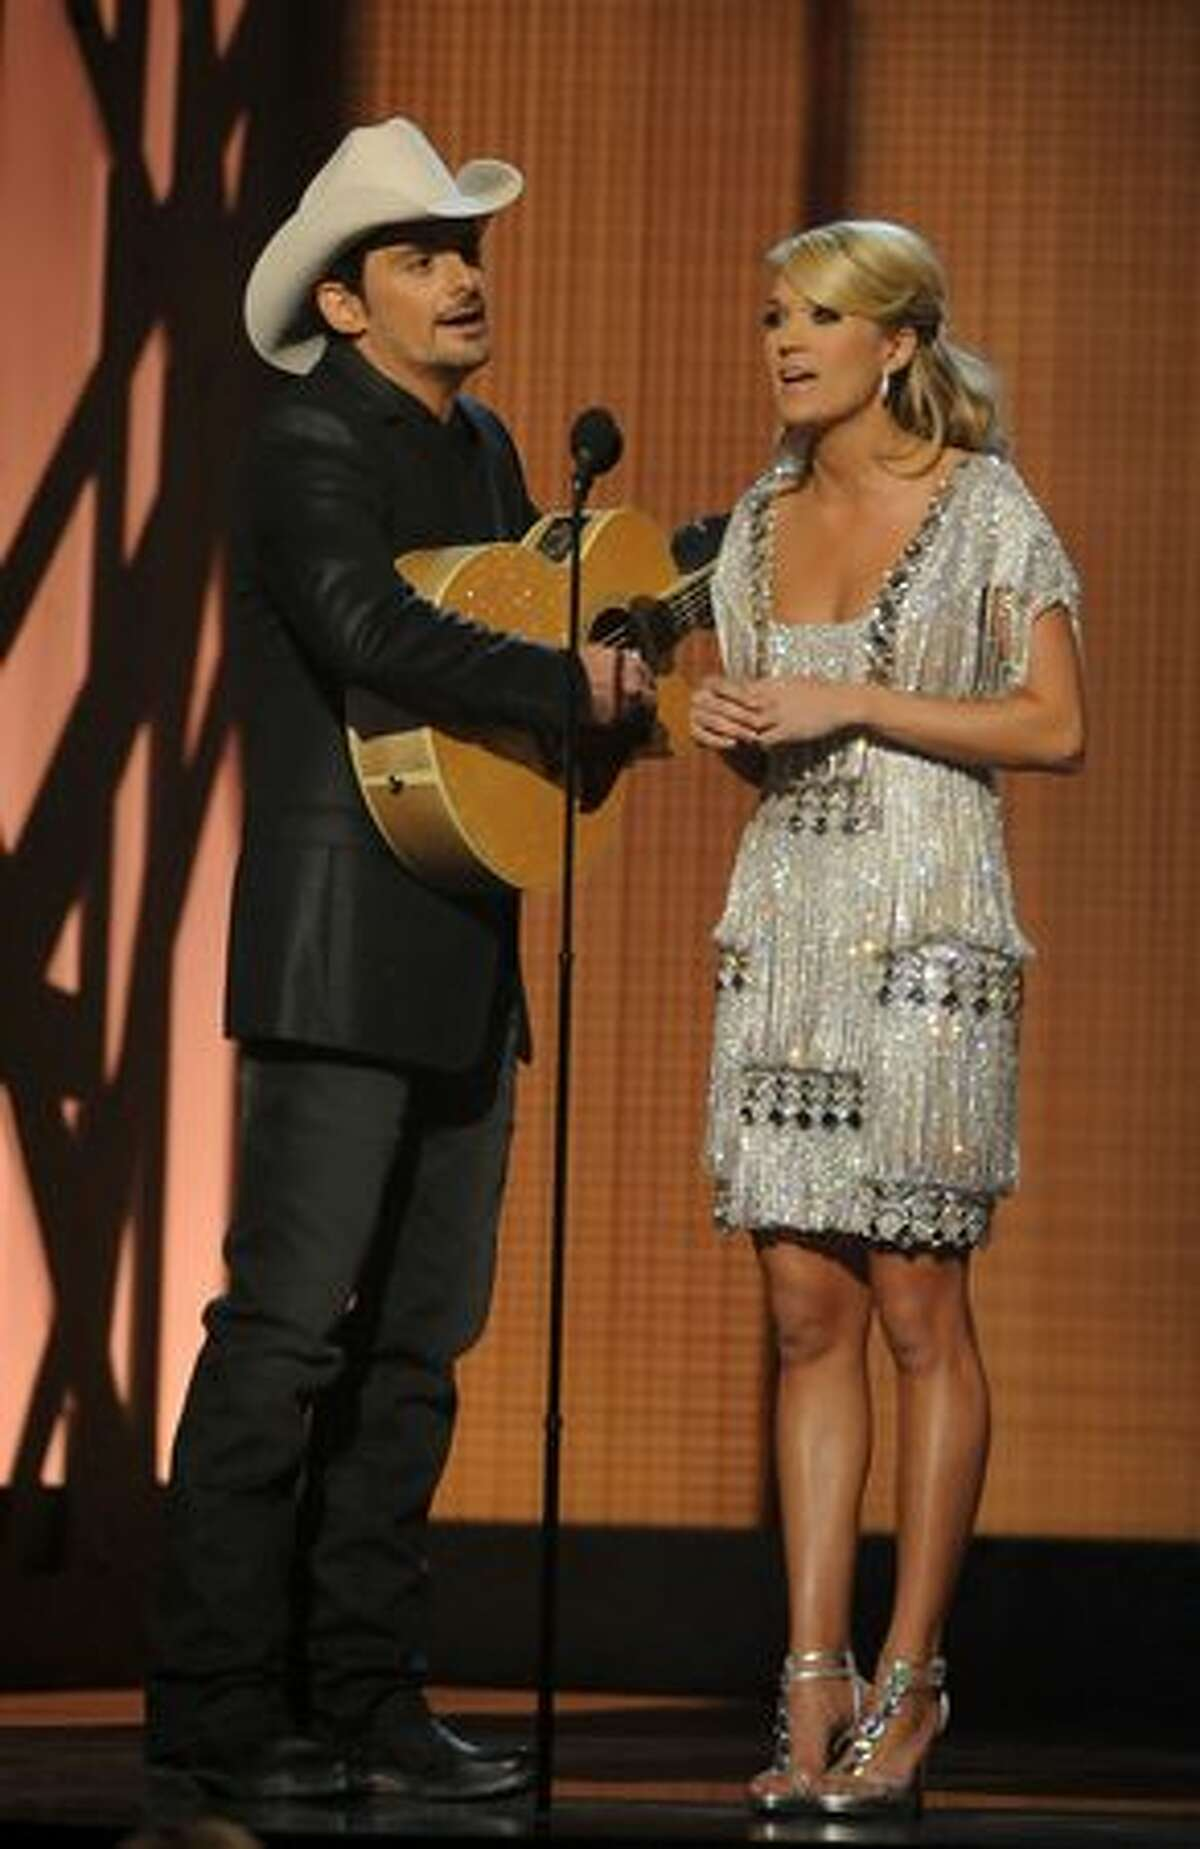 Hosts Brad Paisley and Carrie Underwood speak onstage.